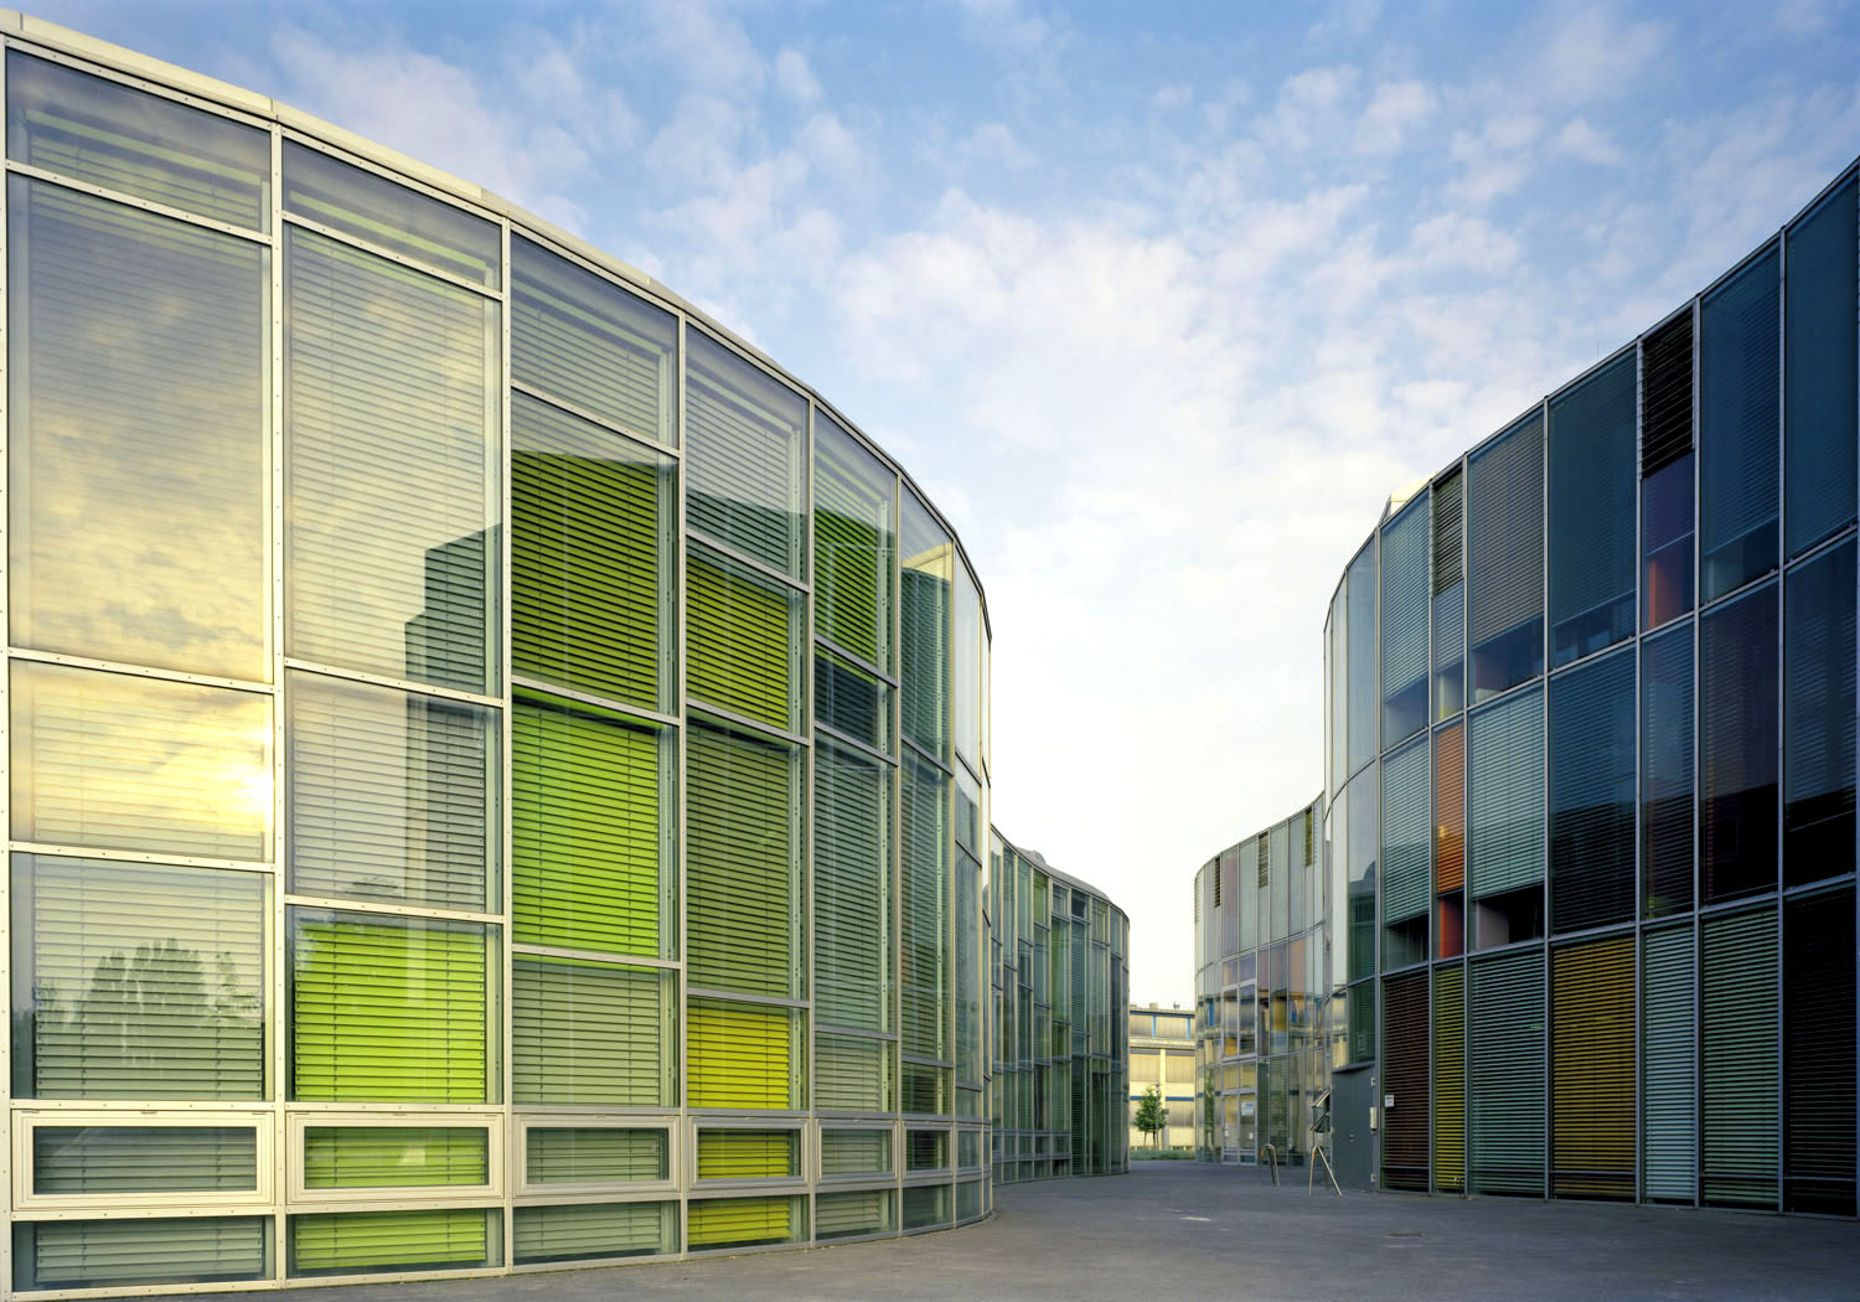 Sauerbruch Hutton Architekten, Photonikzentrum Berlin Adlershof, 2001